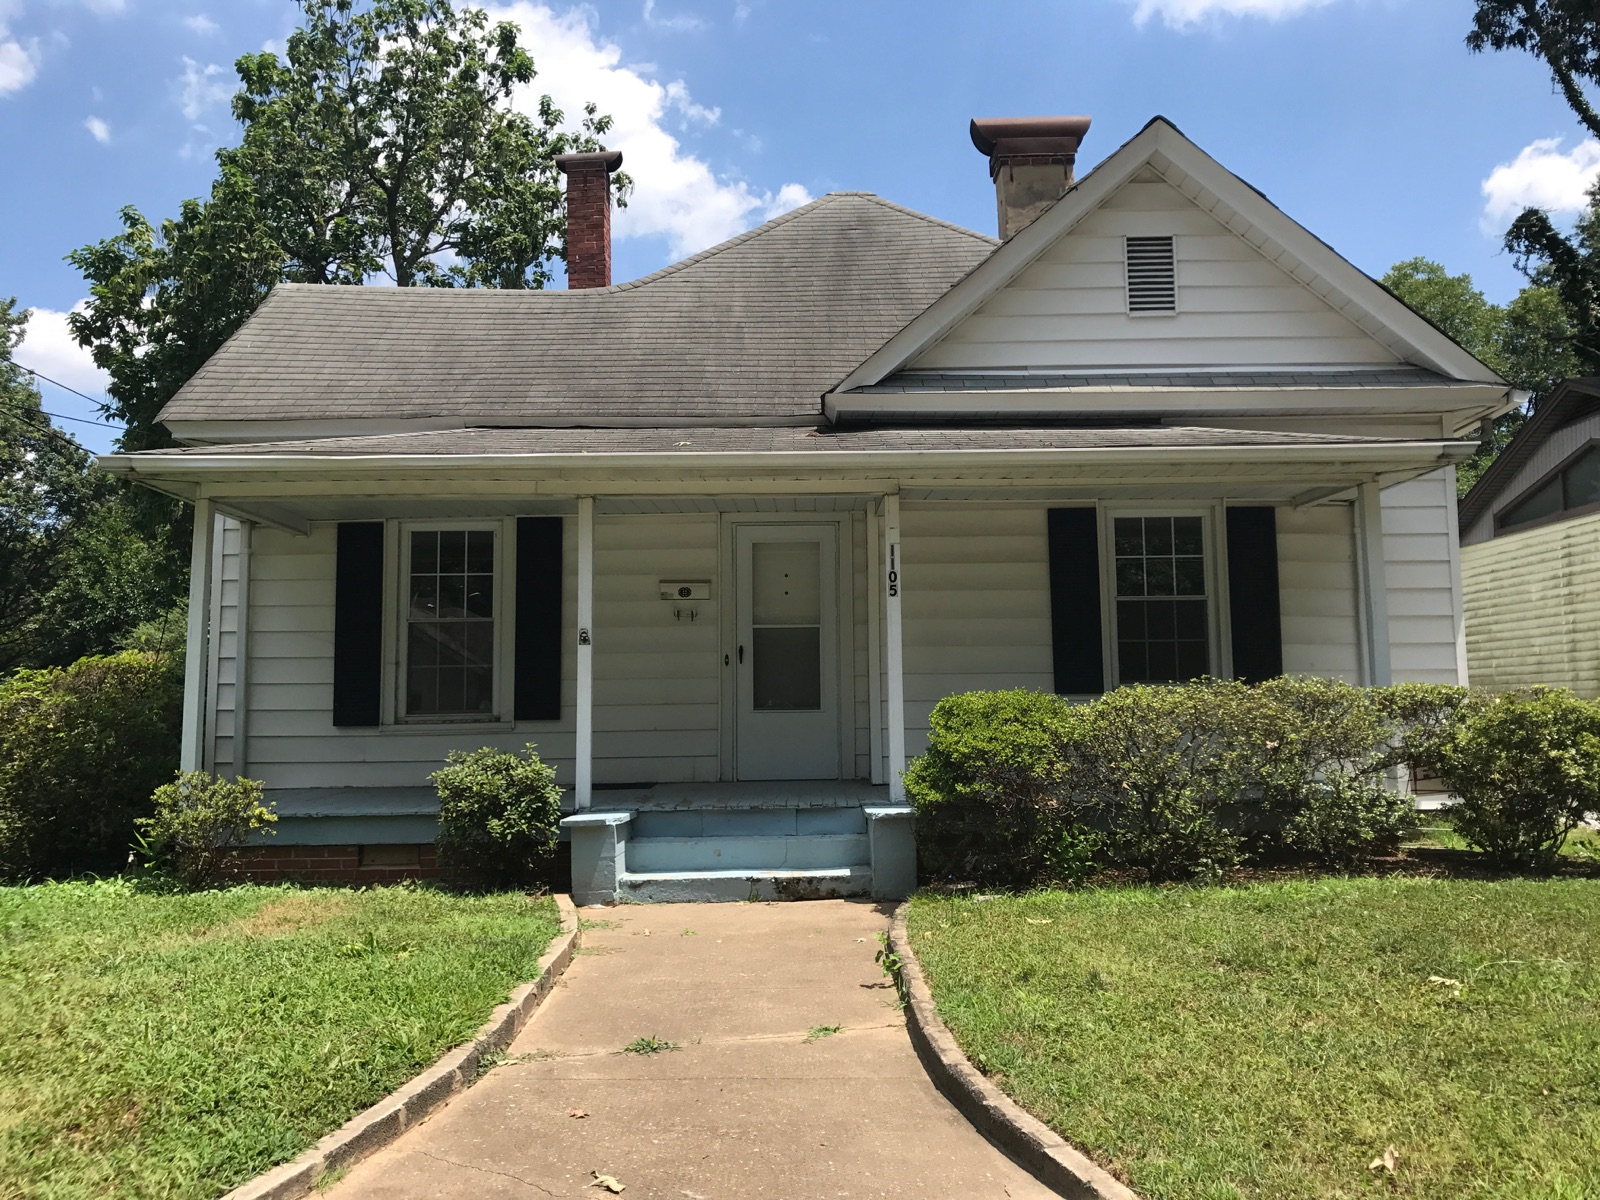 Greensboro NC 27403  House 3 Bedrooms  Glenwood   895 00. Property Search Results